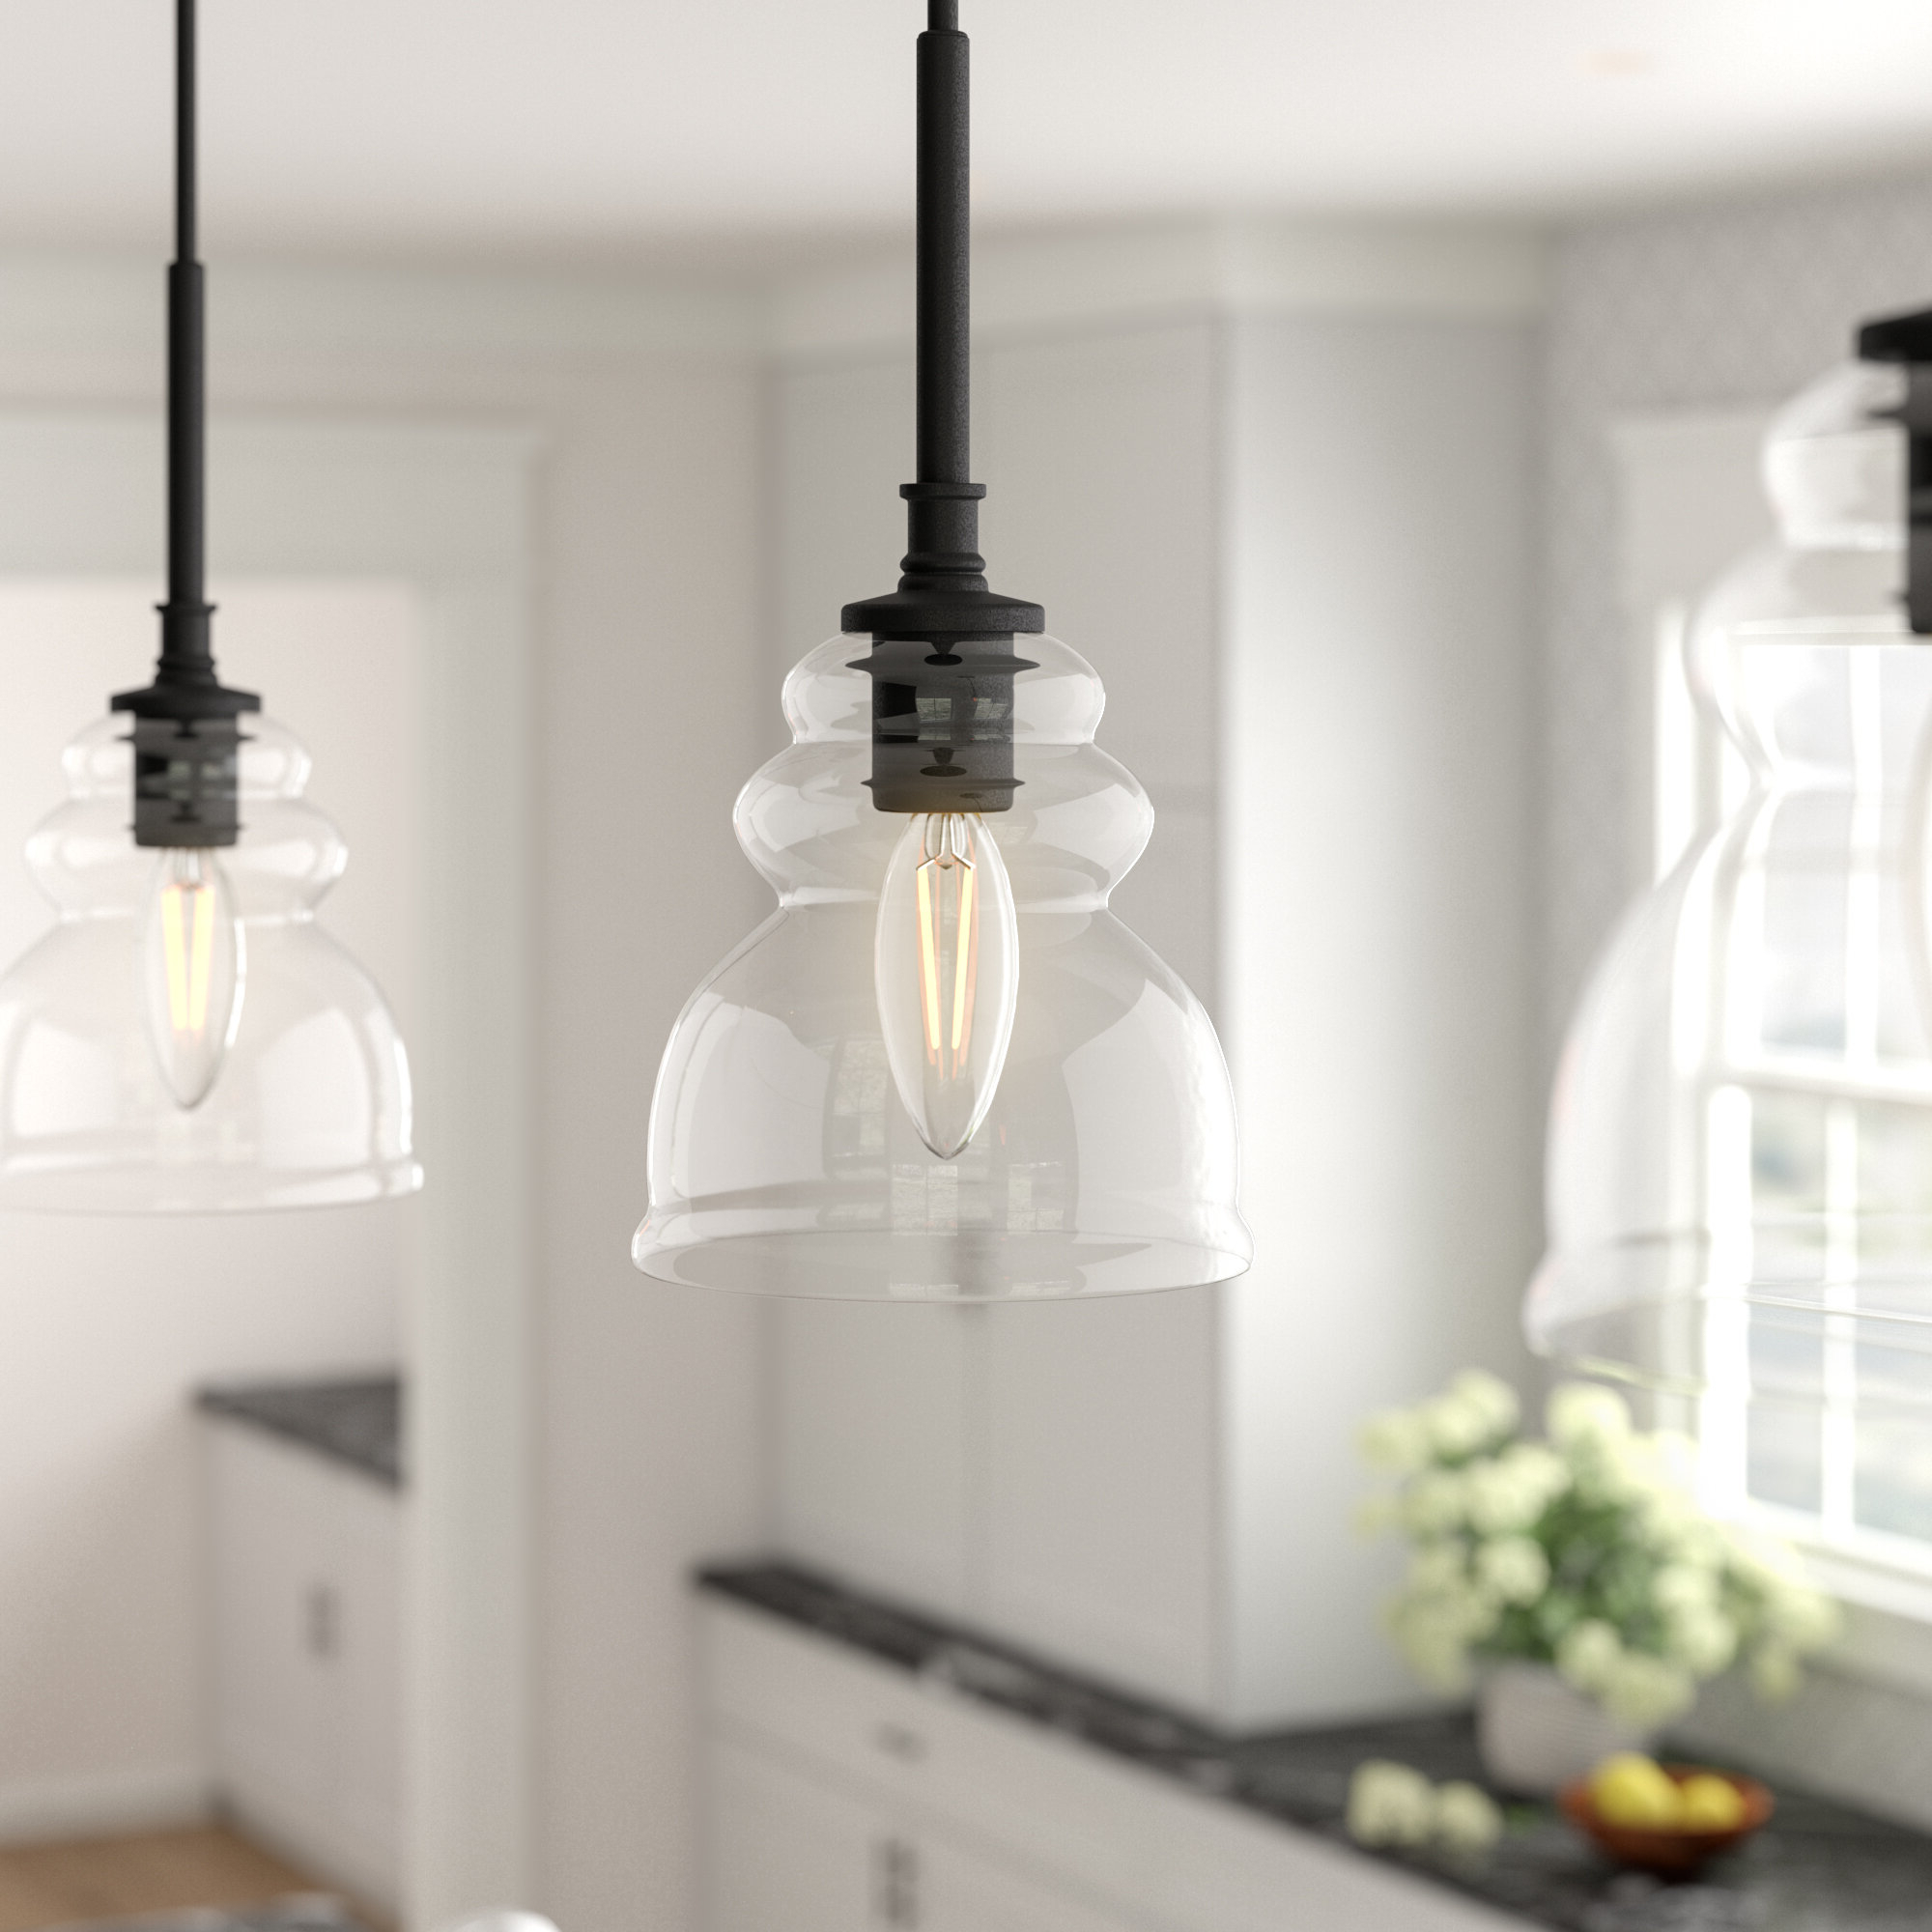 Famous Sargent 1 Light Single Bell Pendants In Arla 1 Light Single Bell Pendant (View 12 of 25)